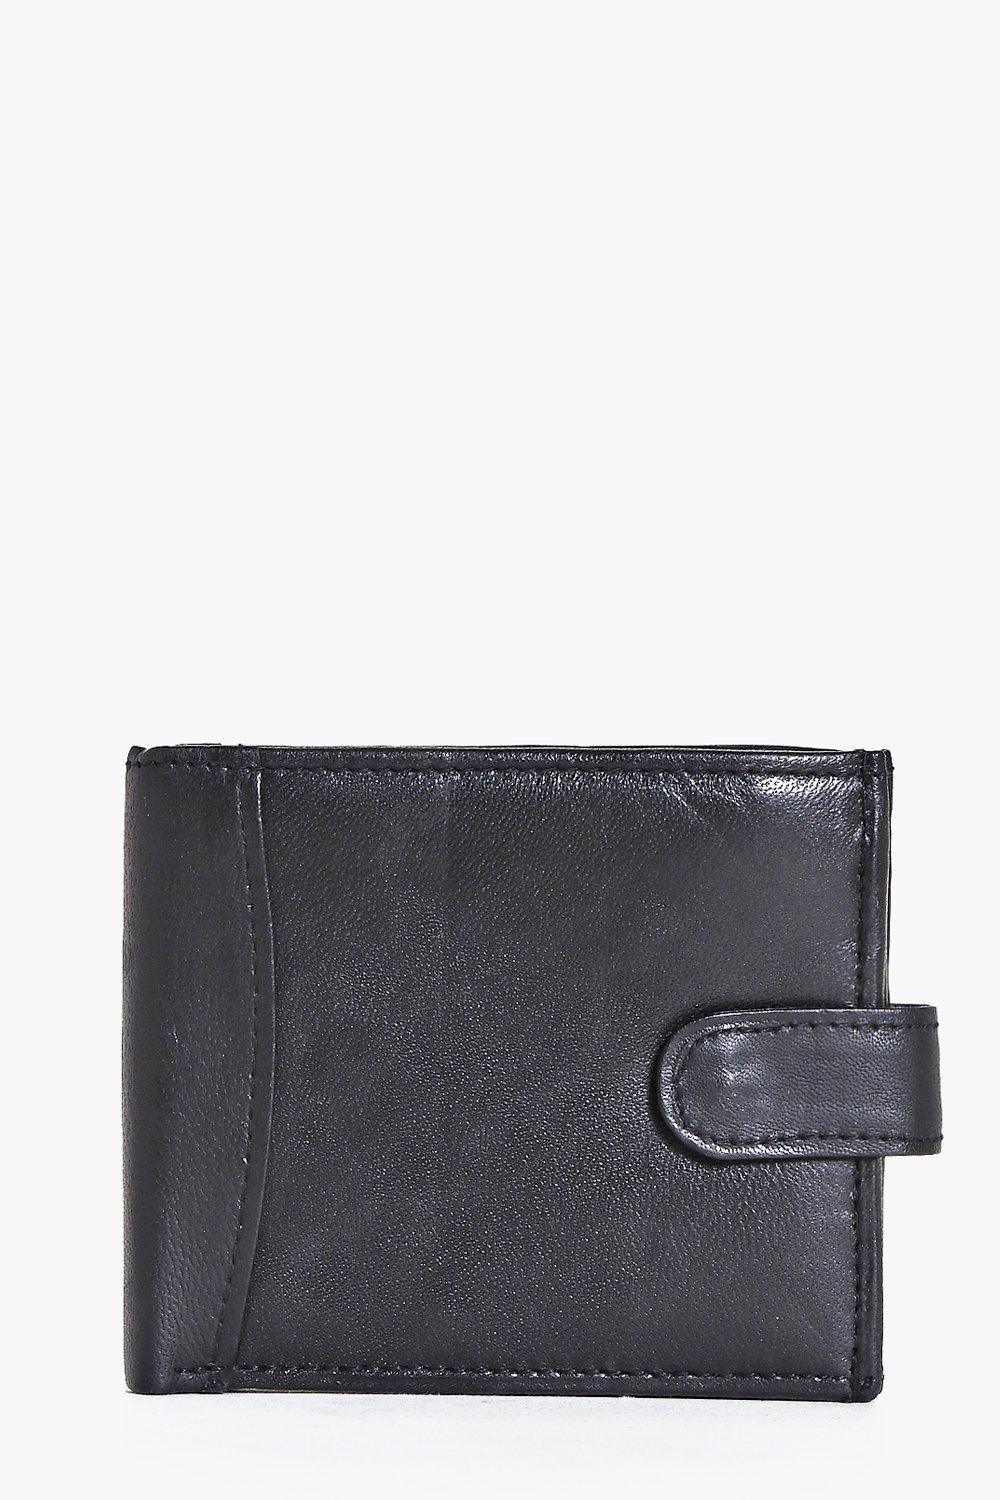 Real Leather Black Wallet